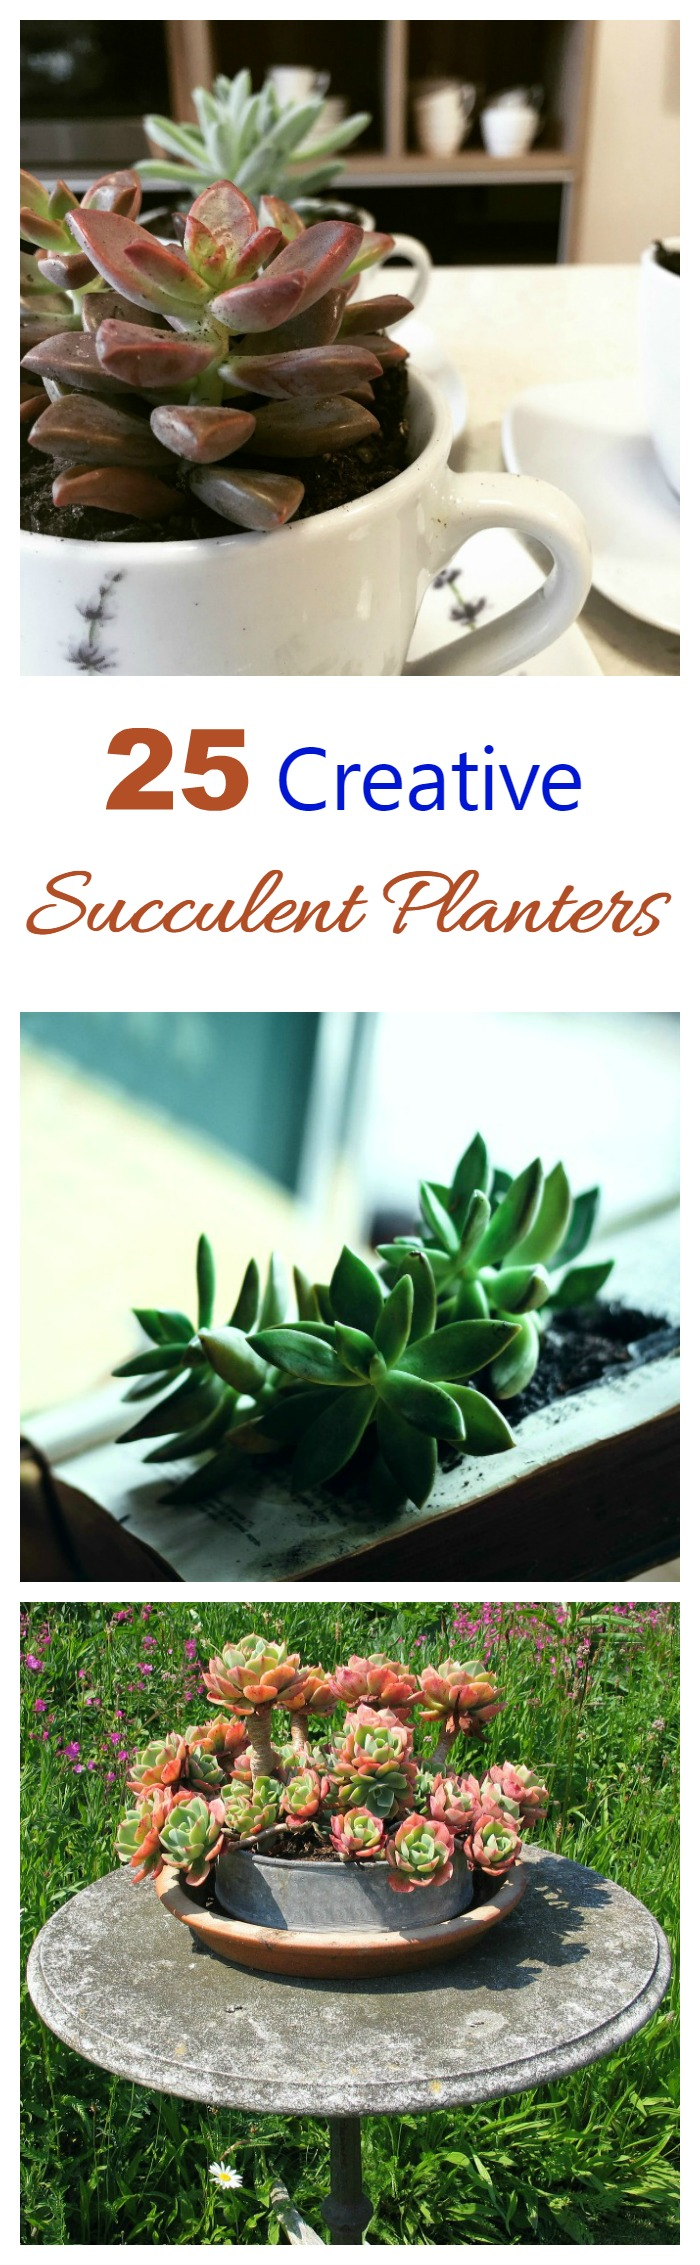 These creative and fun succulent planters will show you that you can plant these hardy plants in just about anything that will hold dirt.